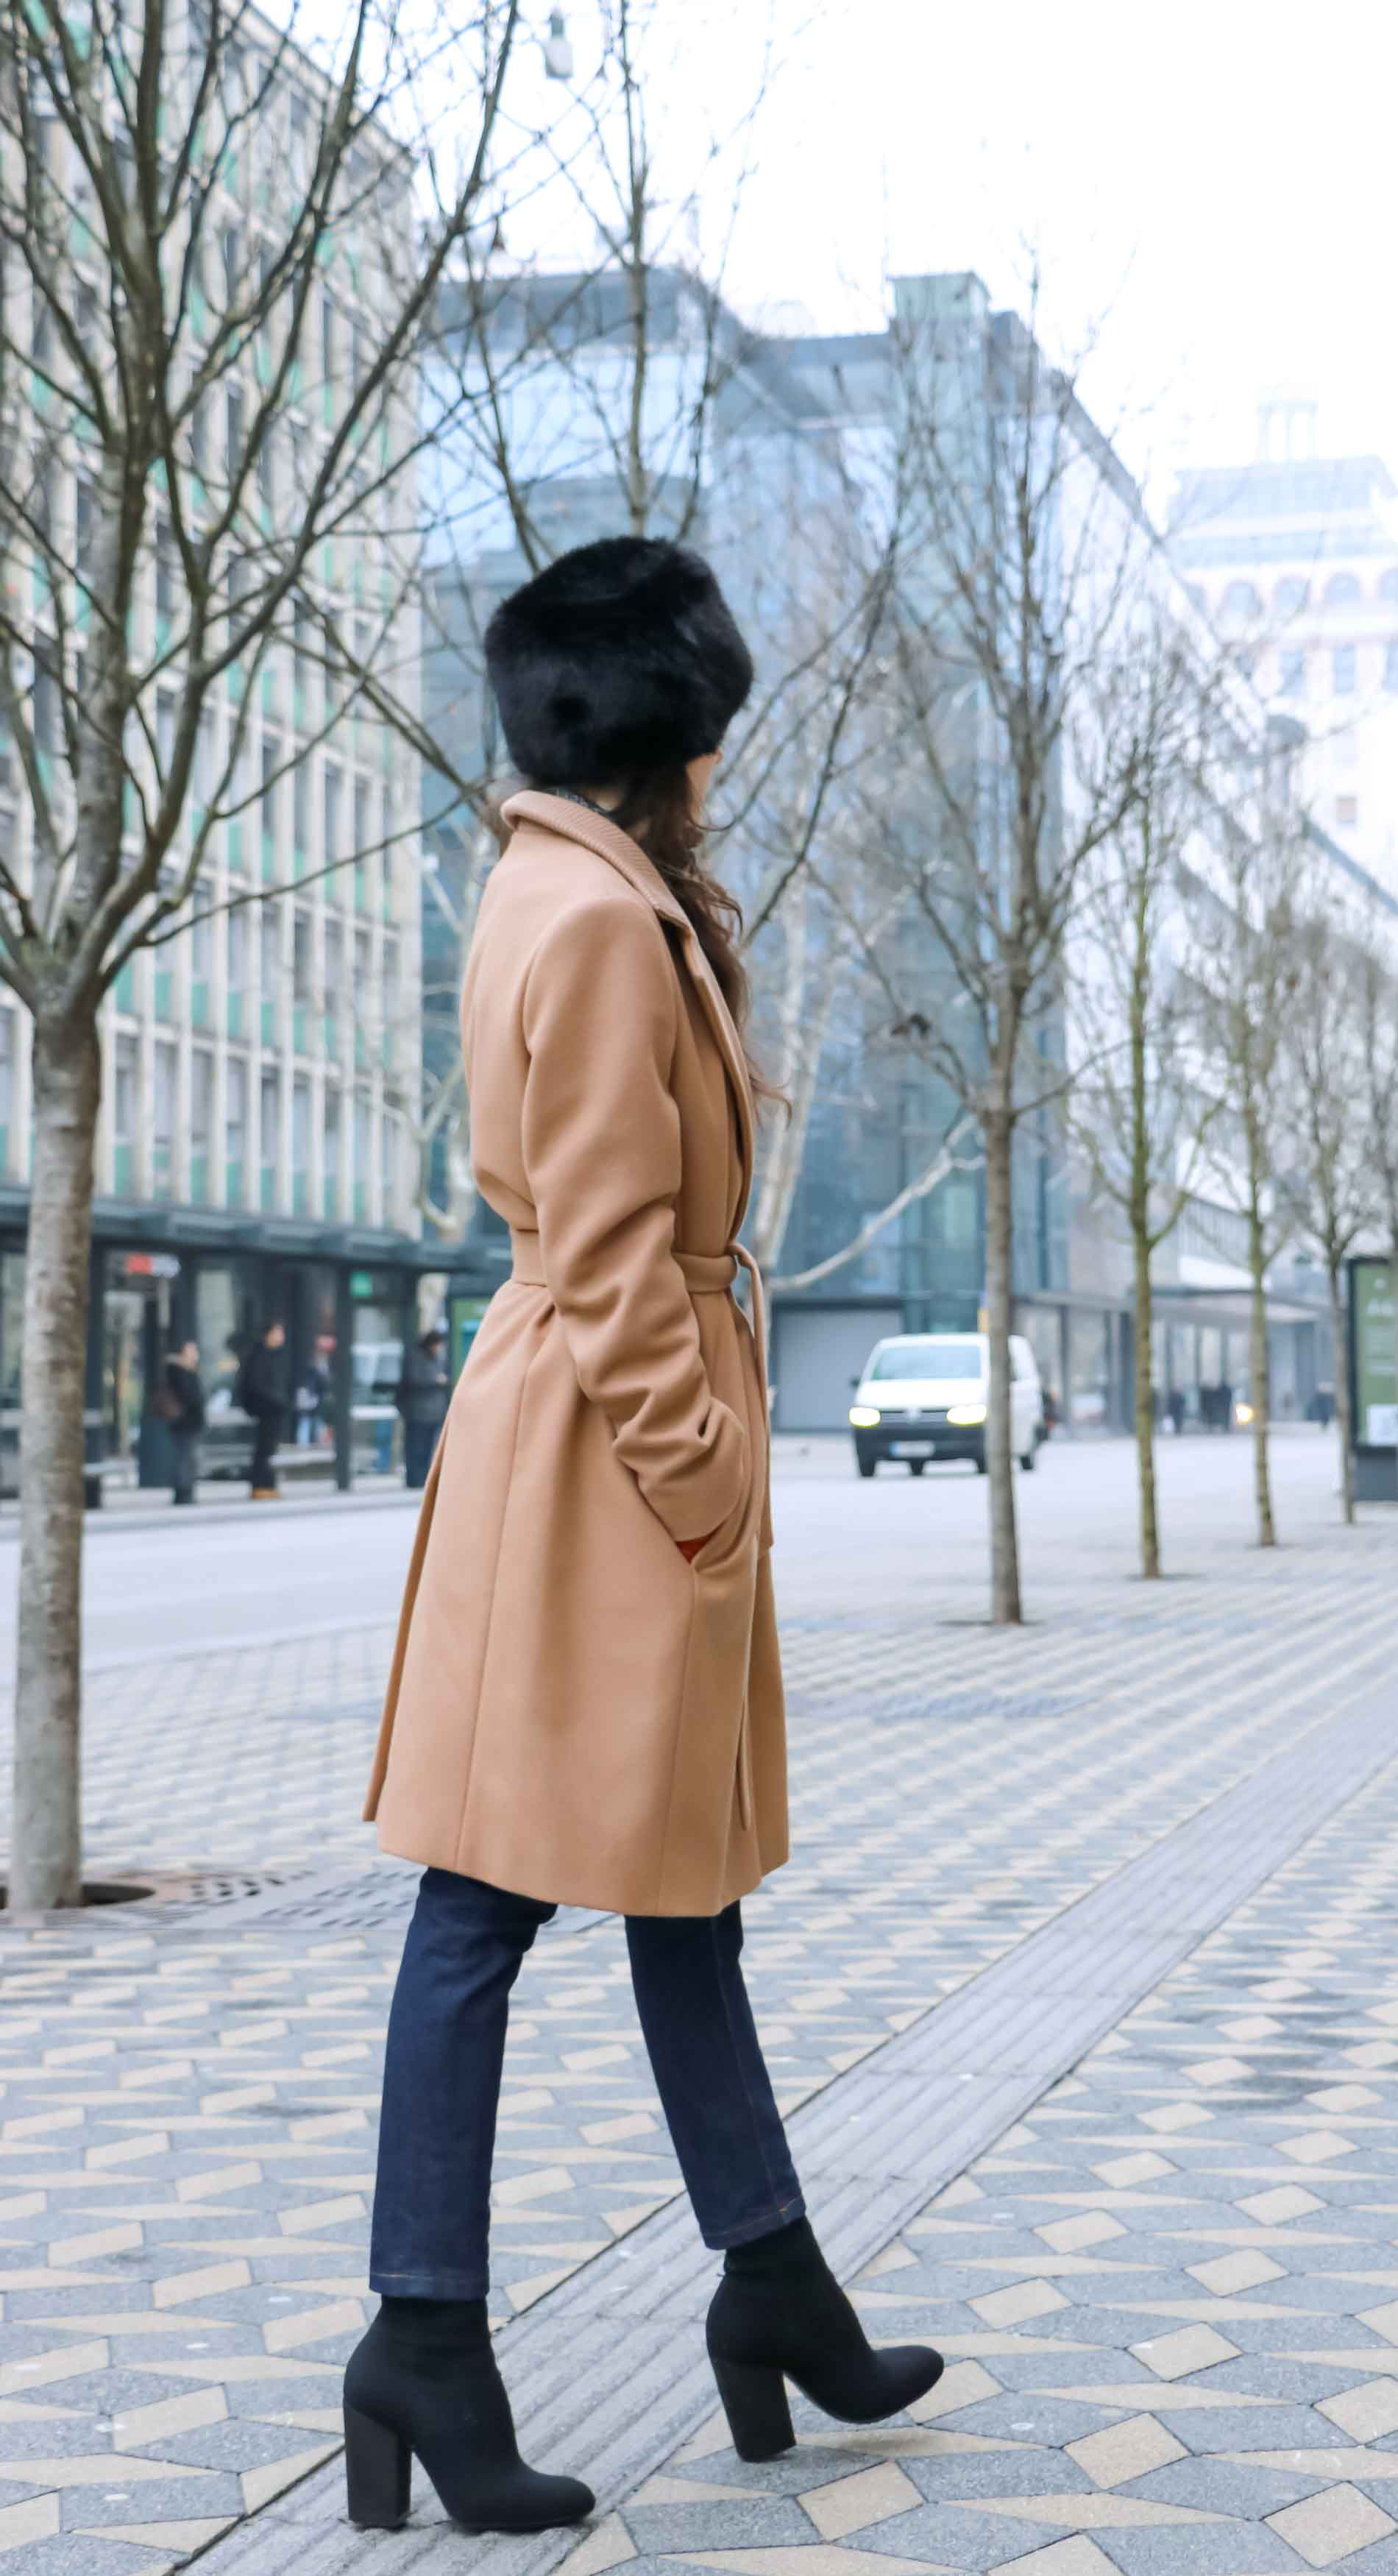 Fashion Blogger Veronika Lipar of Brunette from Wall Street dressed in her on the go winter outfit